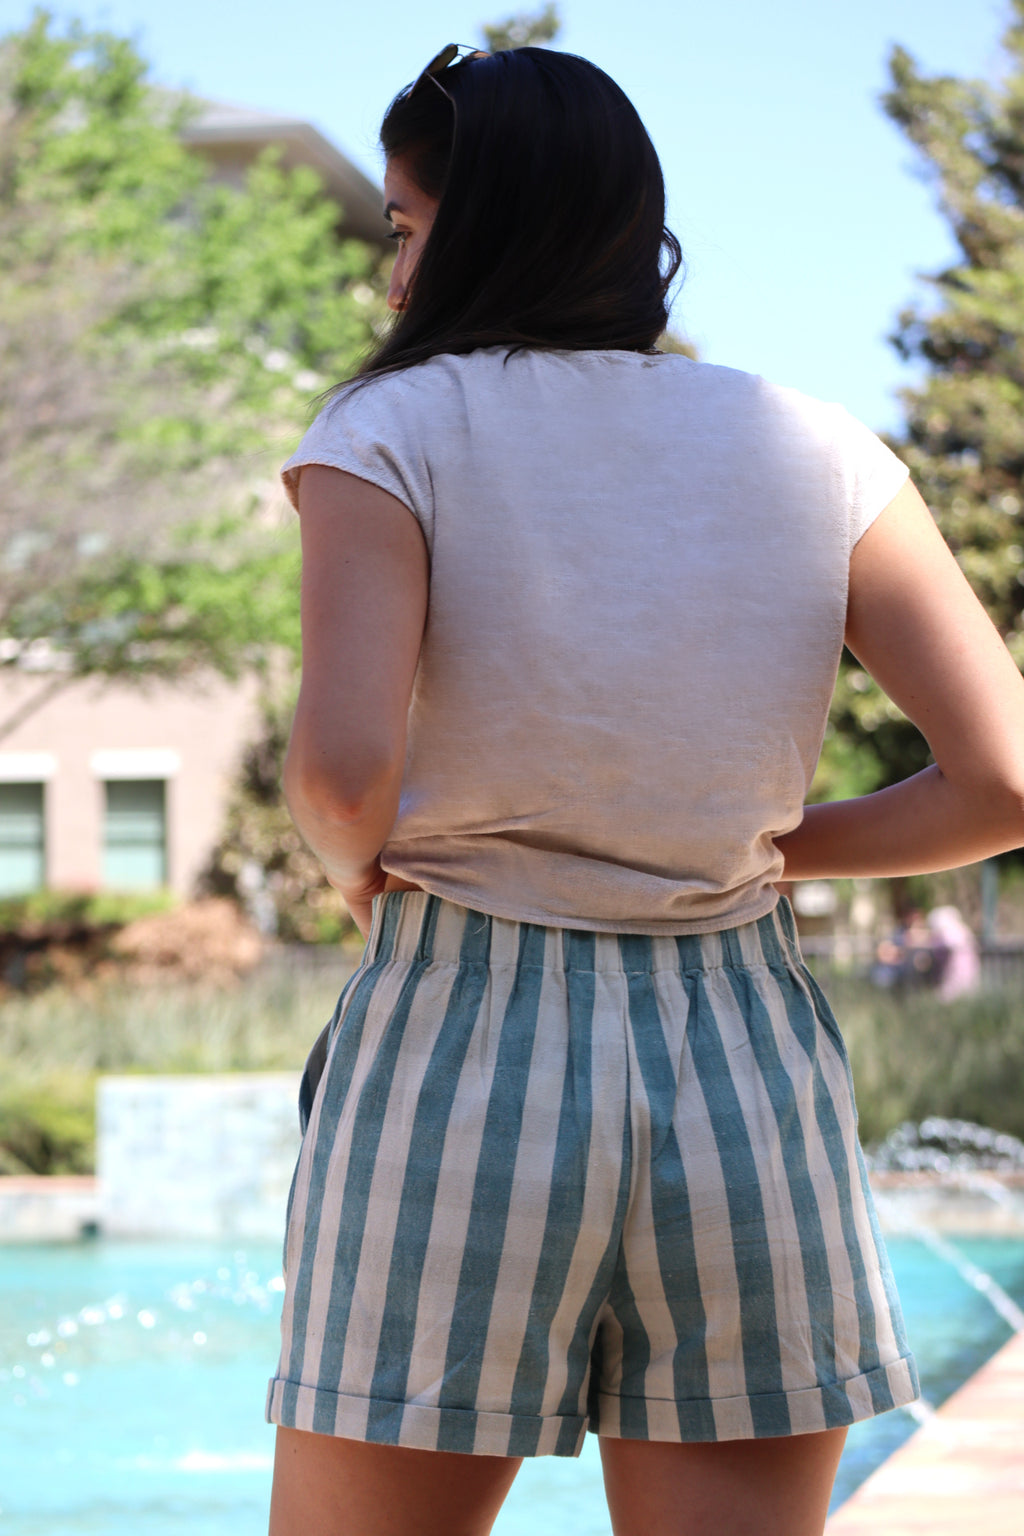 SAM'S STRIPE SHORTS - TEAL & SAND